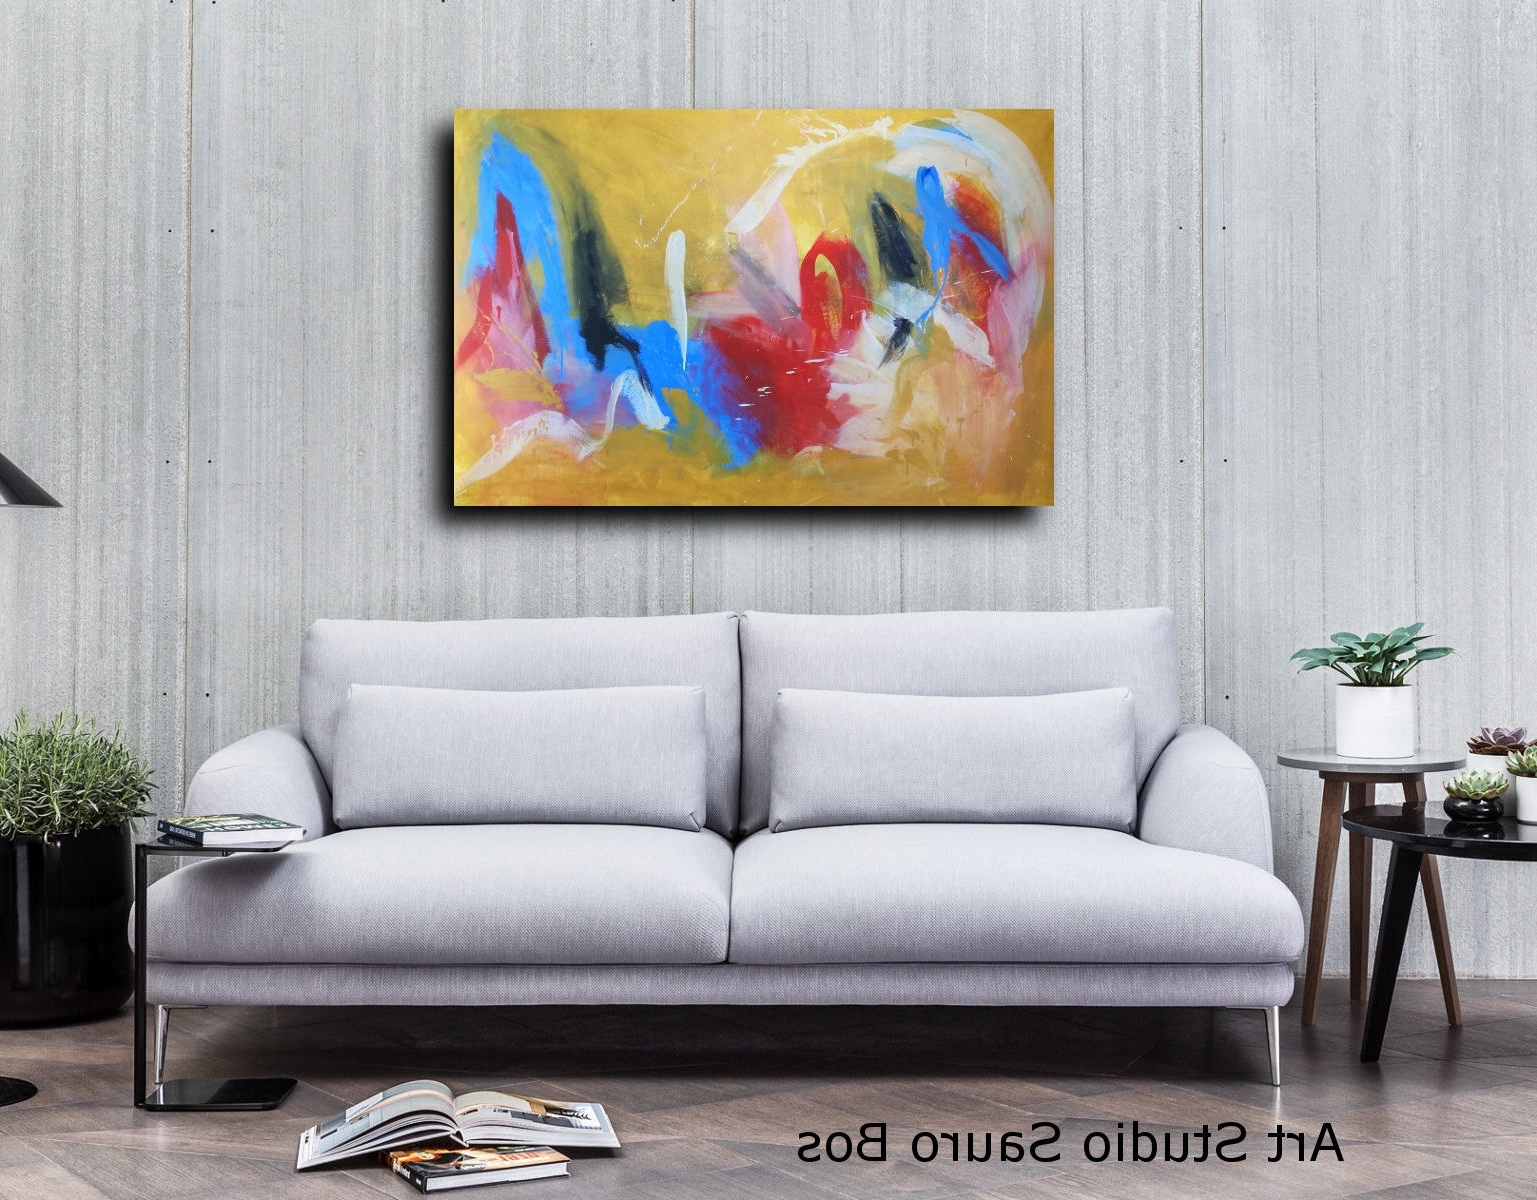 Large Wall Art Canvas Yellow 120X80 With Regard To Recent Large Canvas Painting Wall Art (Gallery 11 of 20)